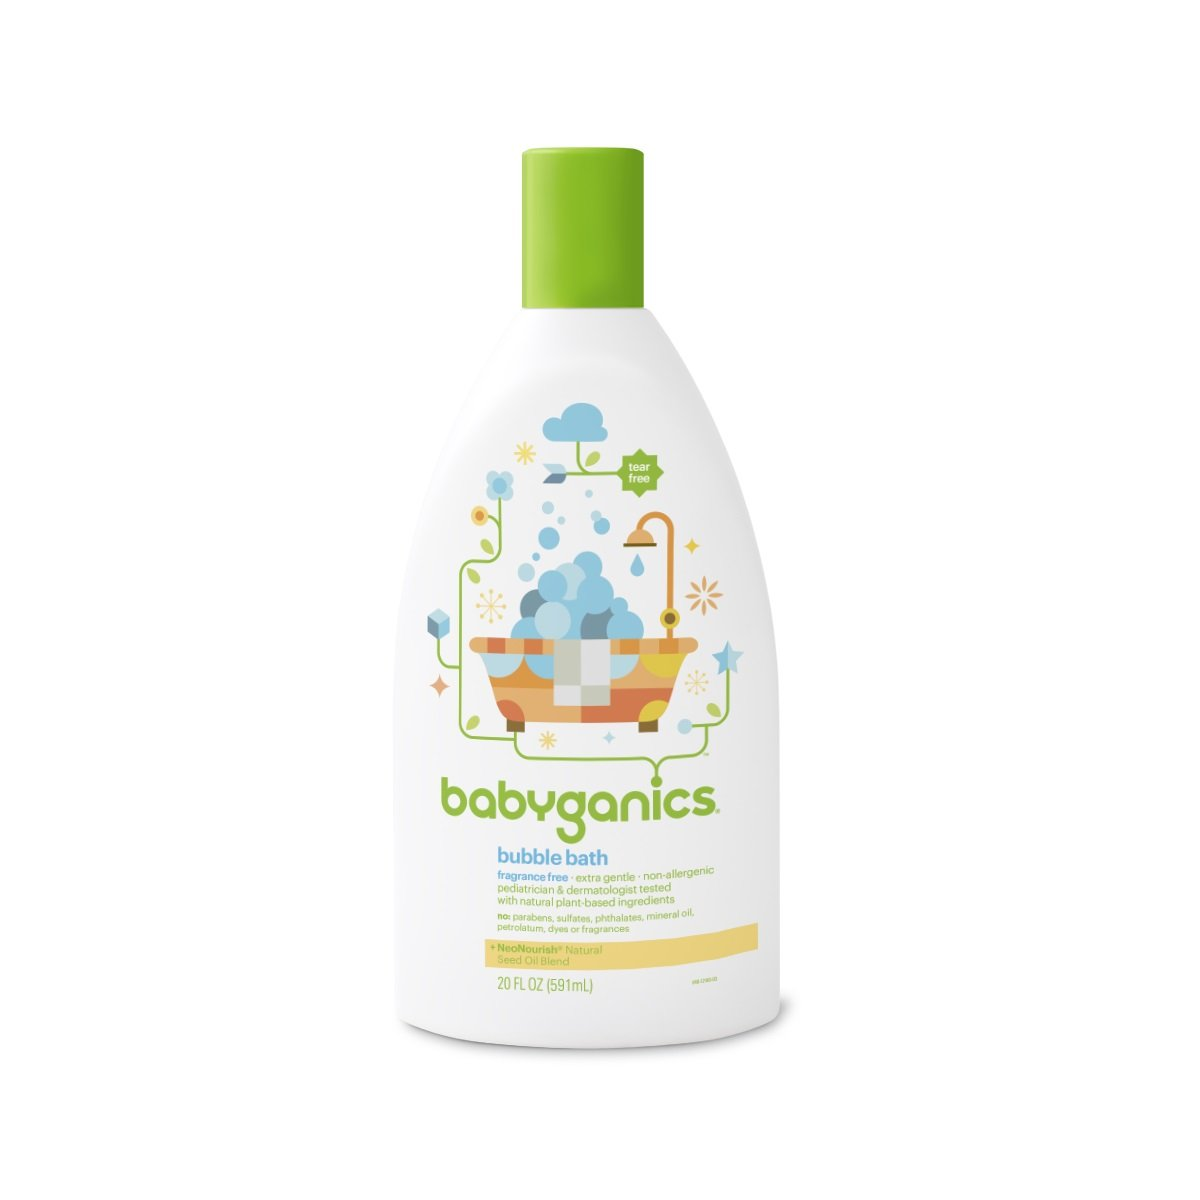 Babyganics Baby Bubble Bath, Fragrance Free, 20oz Bottle, (Pack of 2)